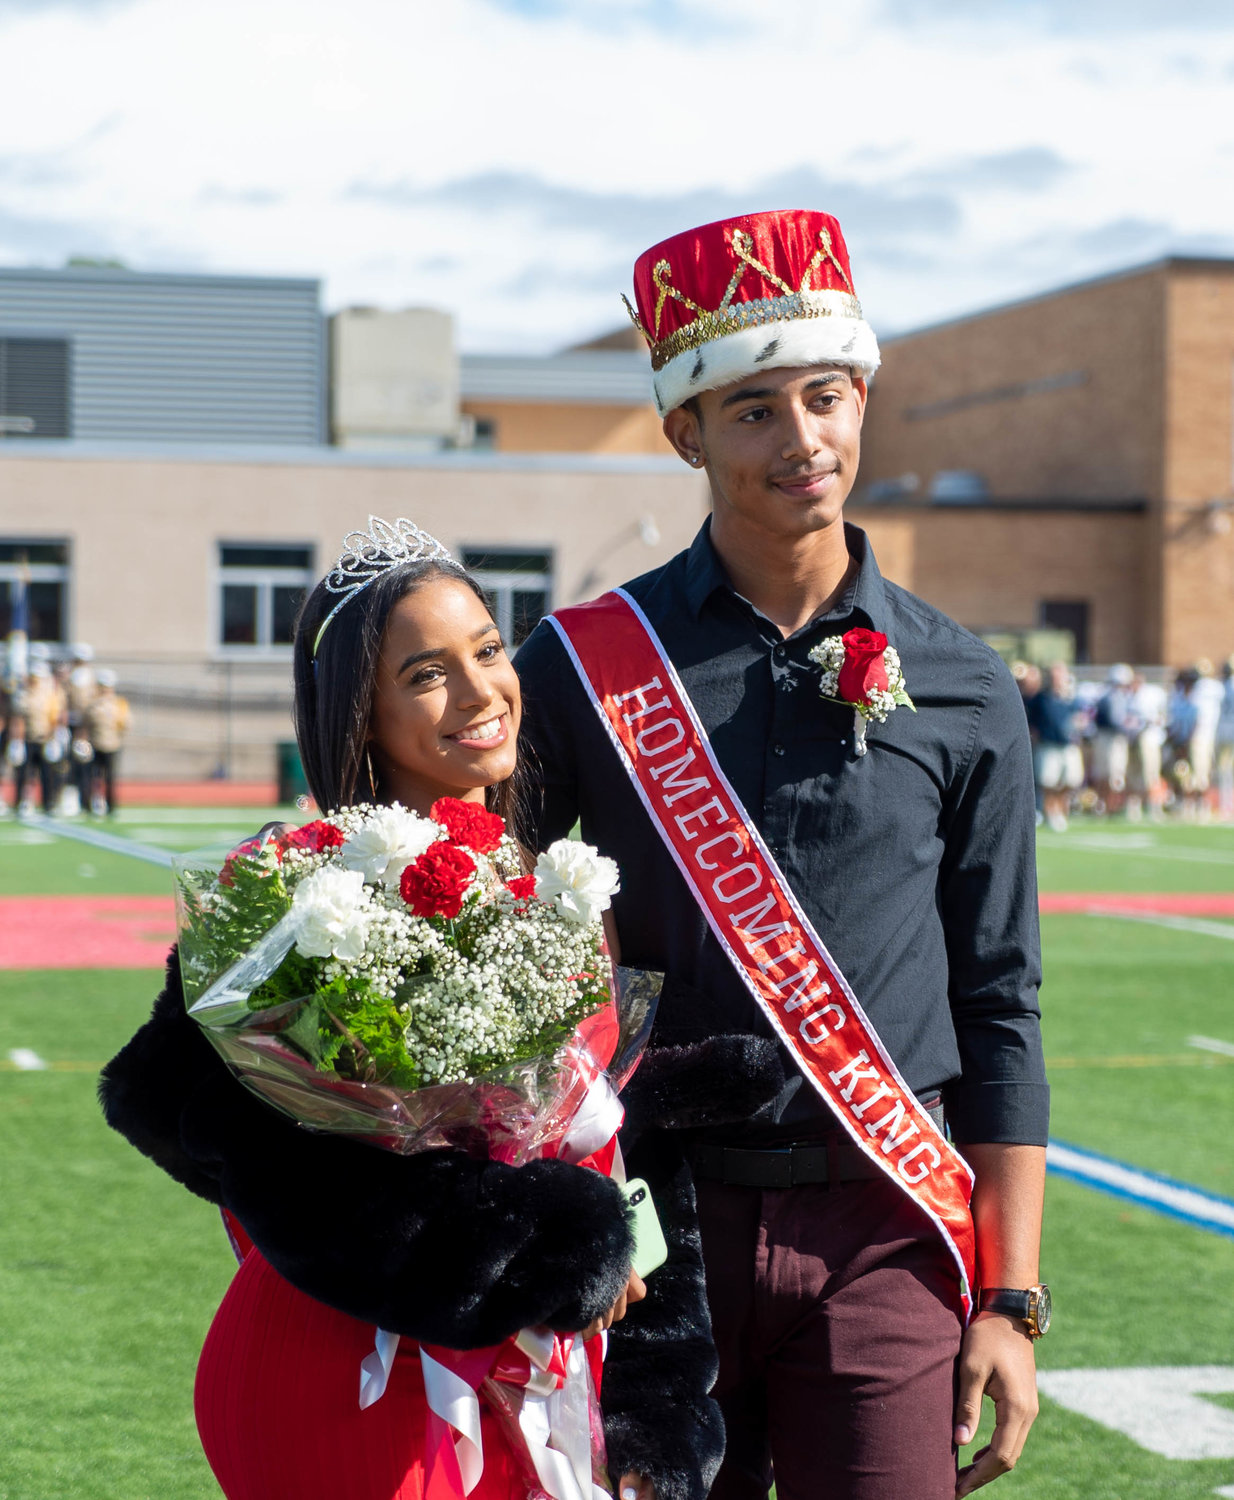 Senior class homecoming king Anthony Peralta, left and queen Gianna Mullings.